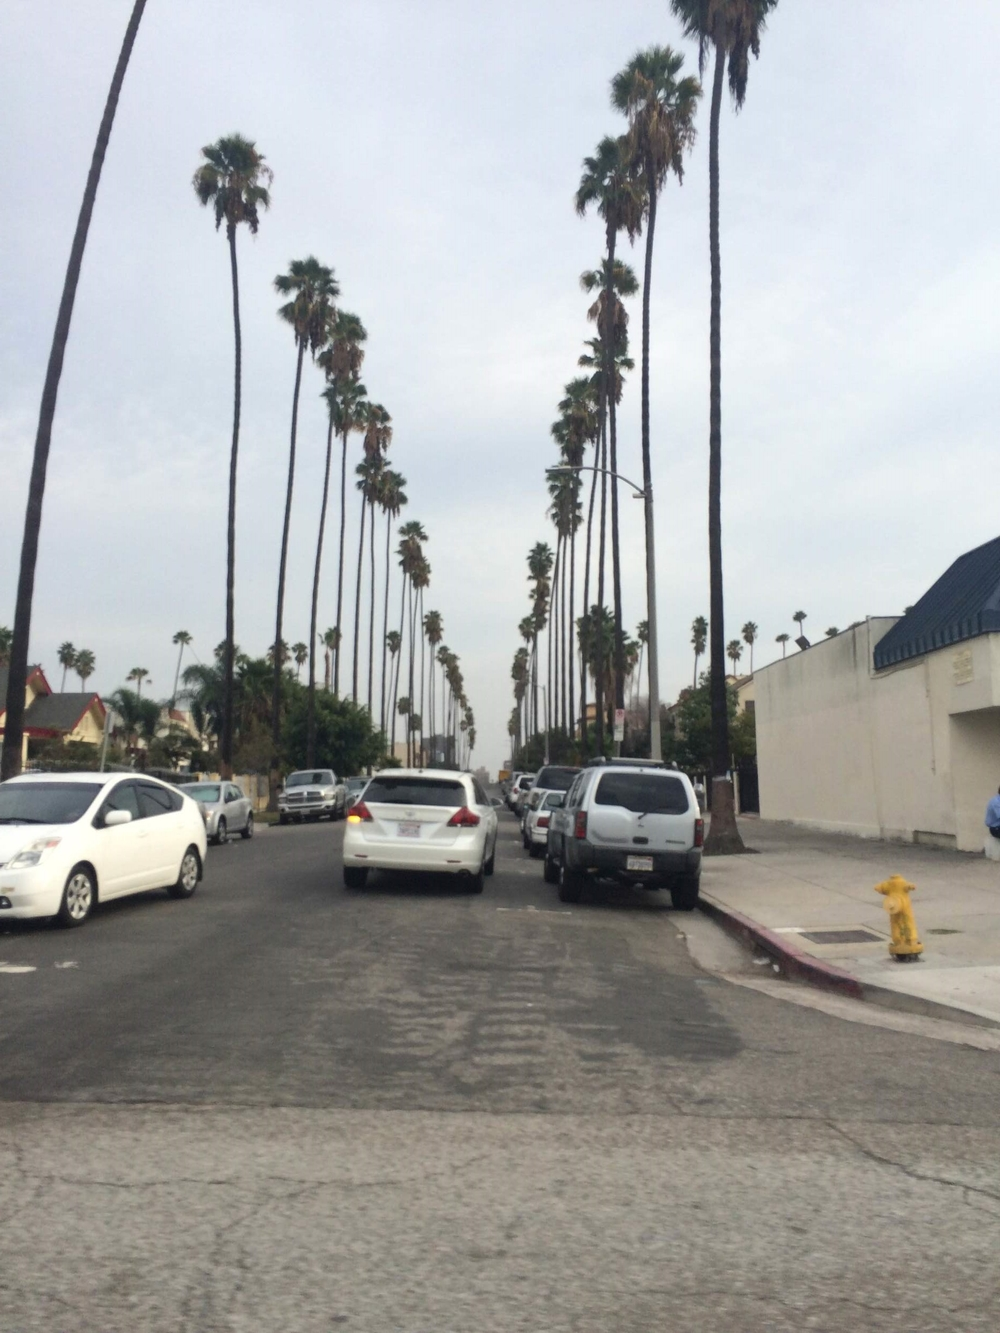 stereotypical LA palm trees